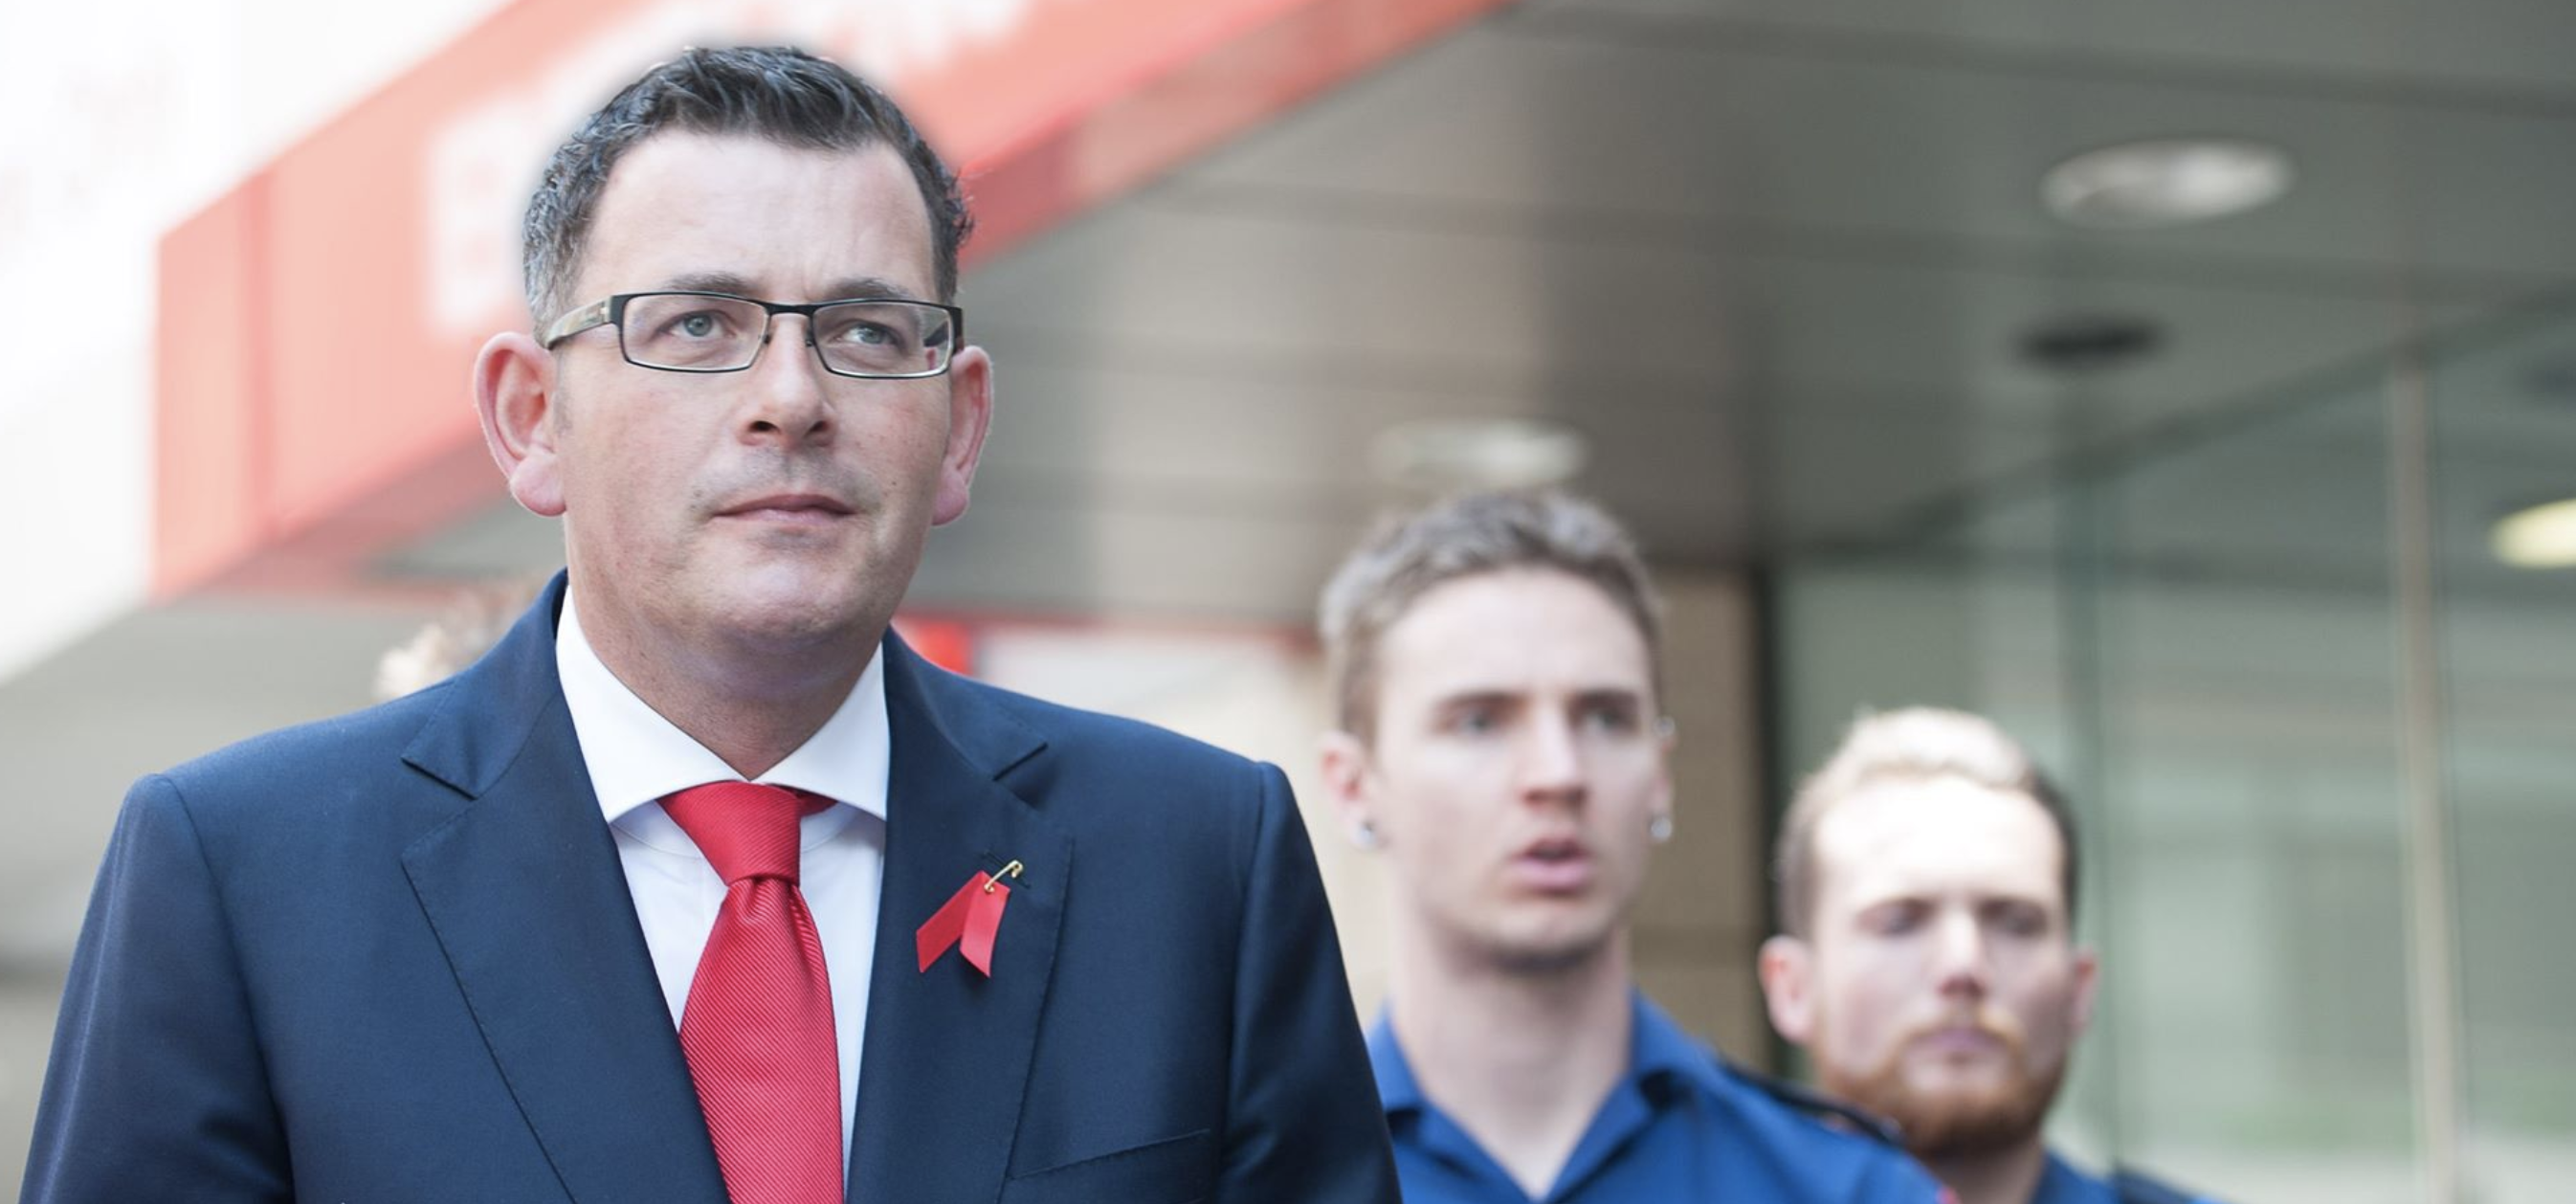 Daniel Andrews becomes the 48th Premier of Victoria